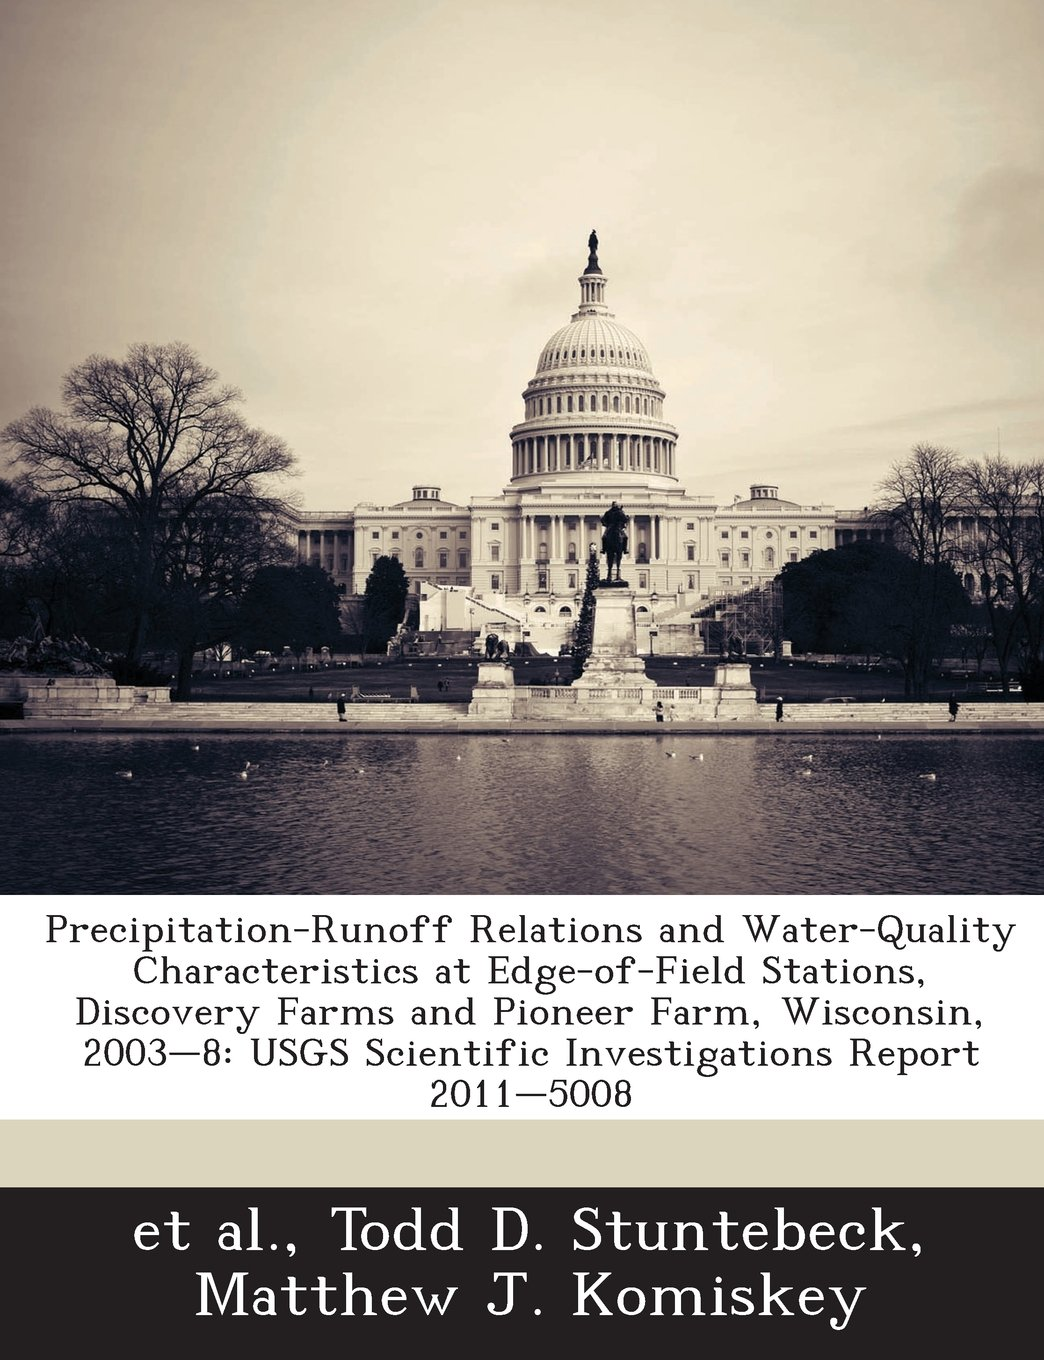 Download Precipitation-Runoff Relations and Water-Quality Characteristics at Edge-of-Field Stations, Discovery Farms and Pioneer Farm, Wisconsin, 2003-8: USGS Scientific Investigations Report 2011-5008 pdf epub